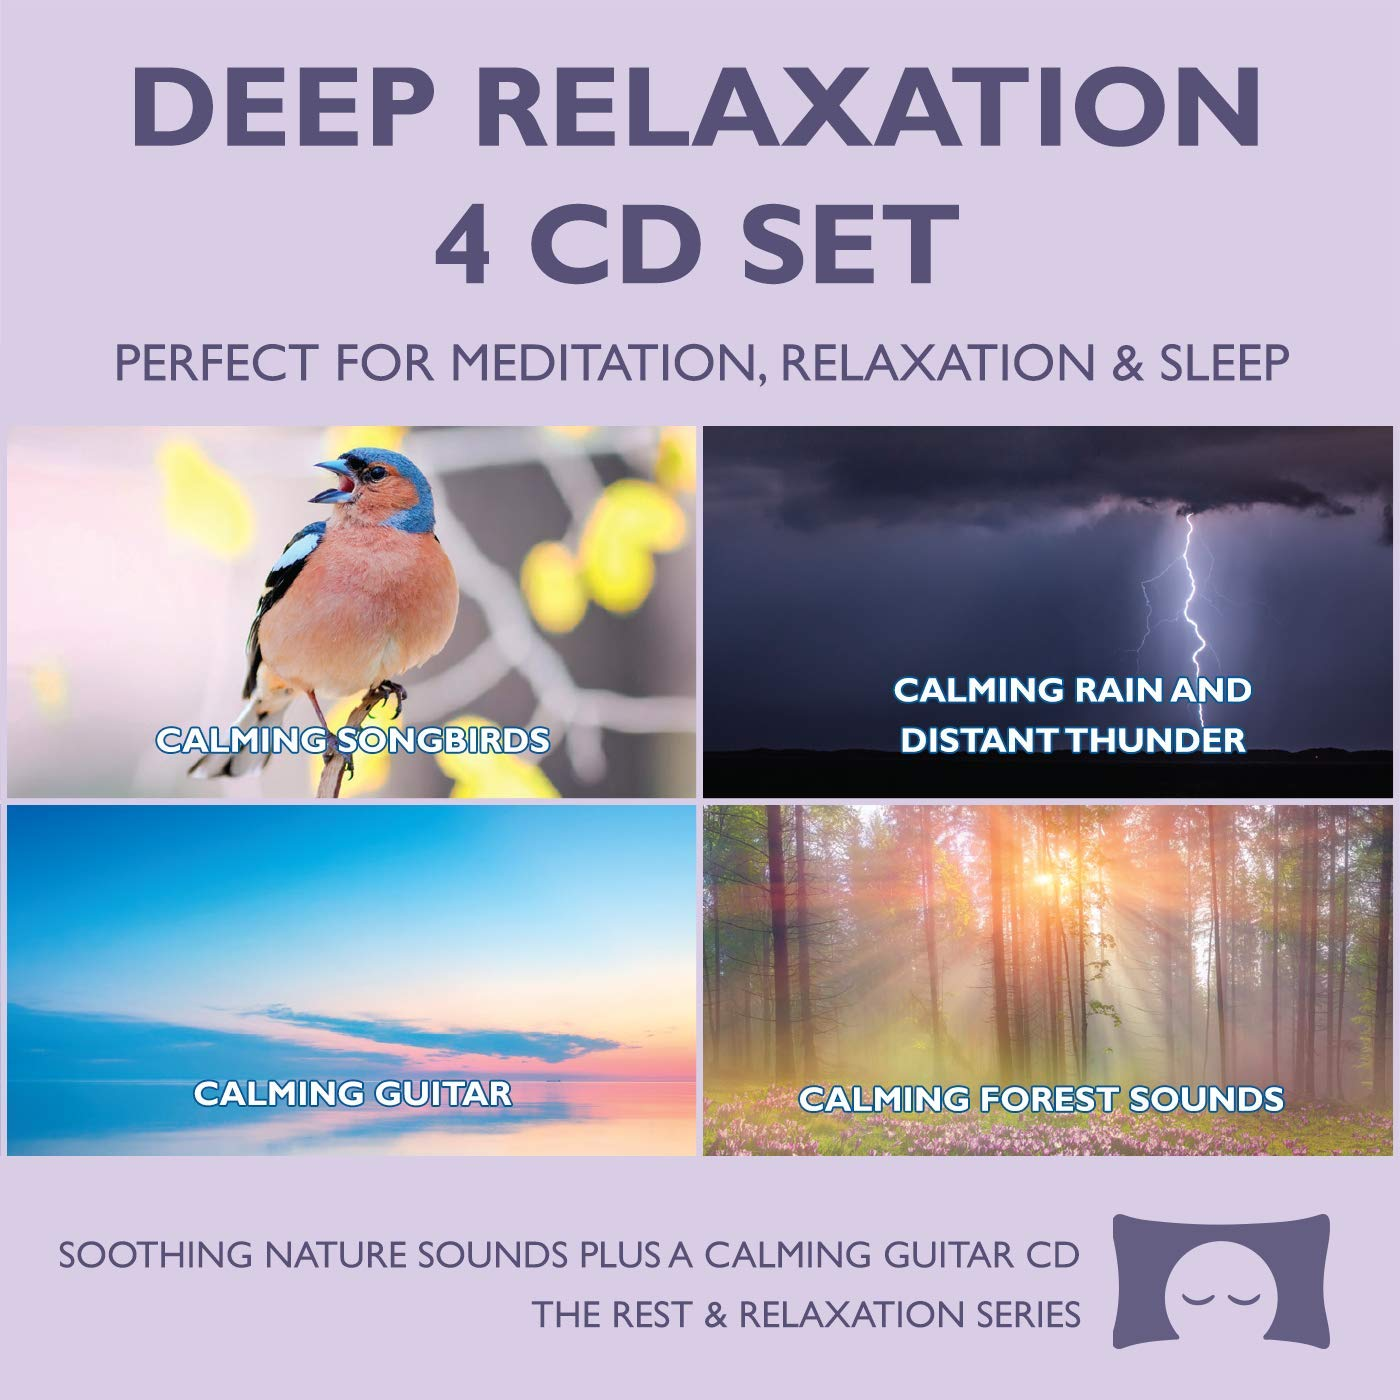 Deep Relaxation 4 CD Set - Soothing Nature Sounds for Meditation, Relaxation and Sleep - Nature's Perfect White Noise - by The Rhythm Tree - The Rest and Relaxation Series